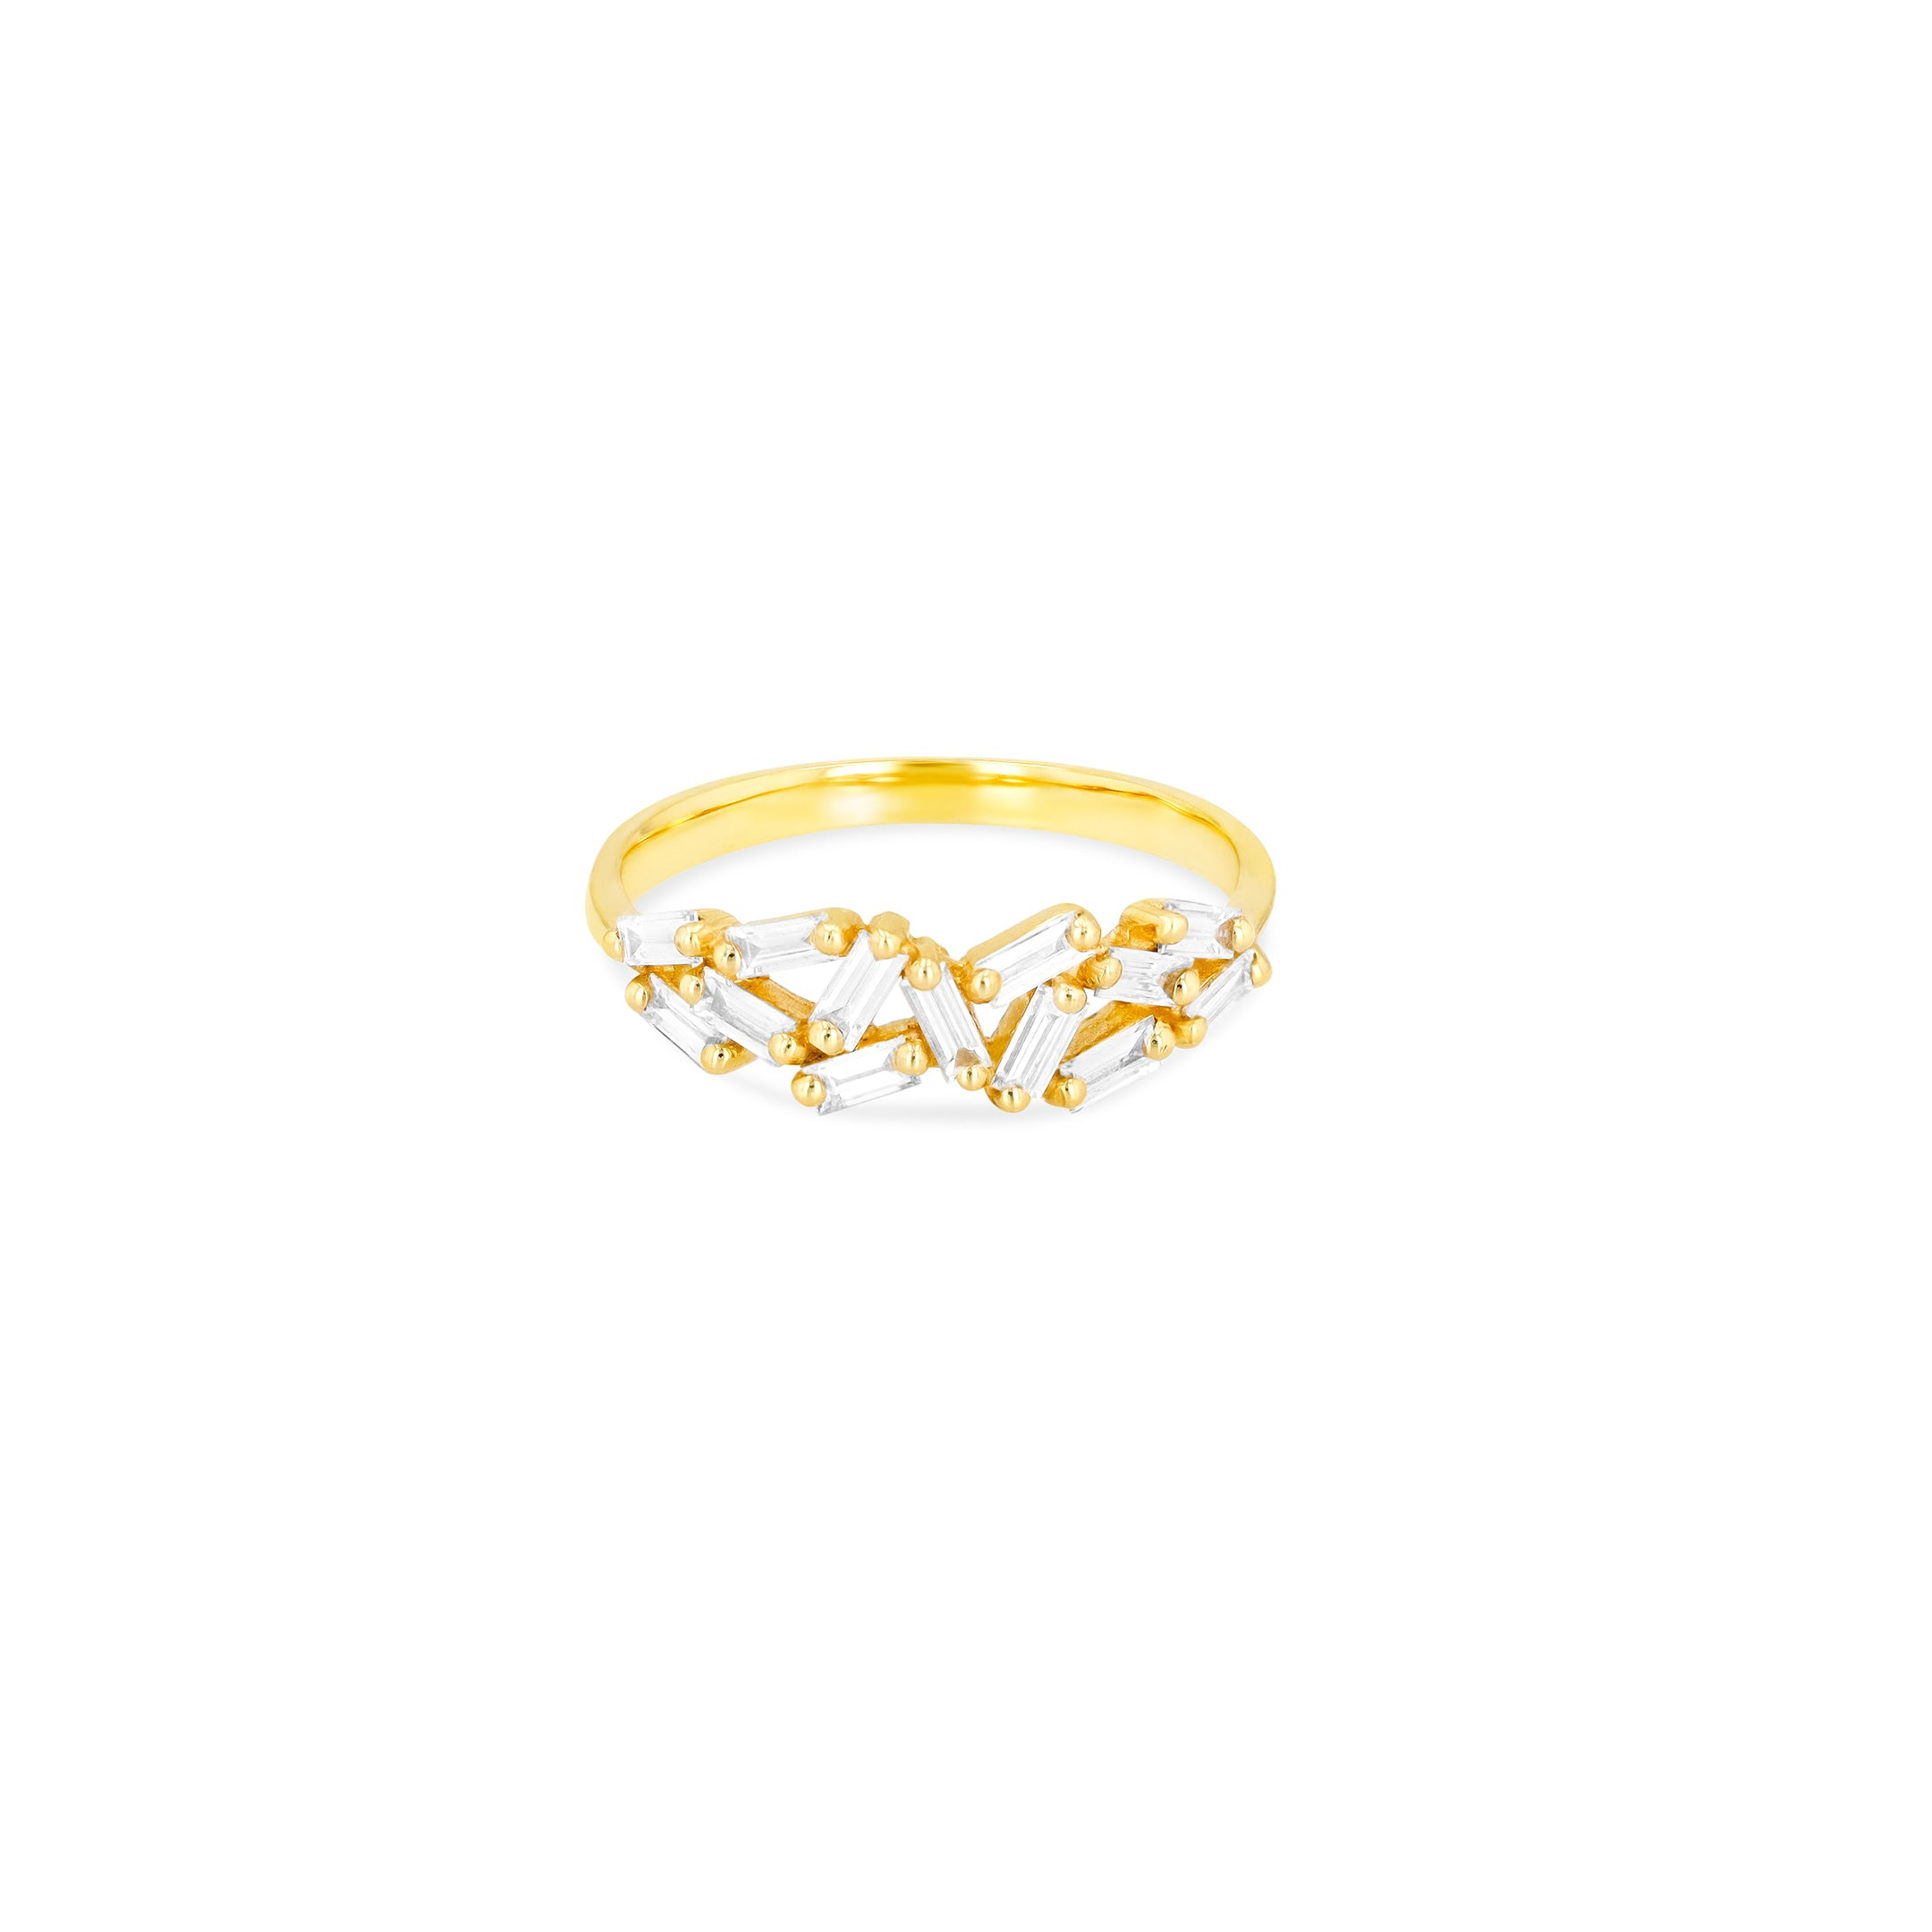 18K YELLOW GOLD CHEVRON BAND